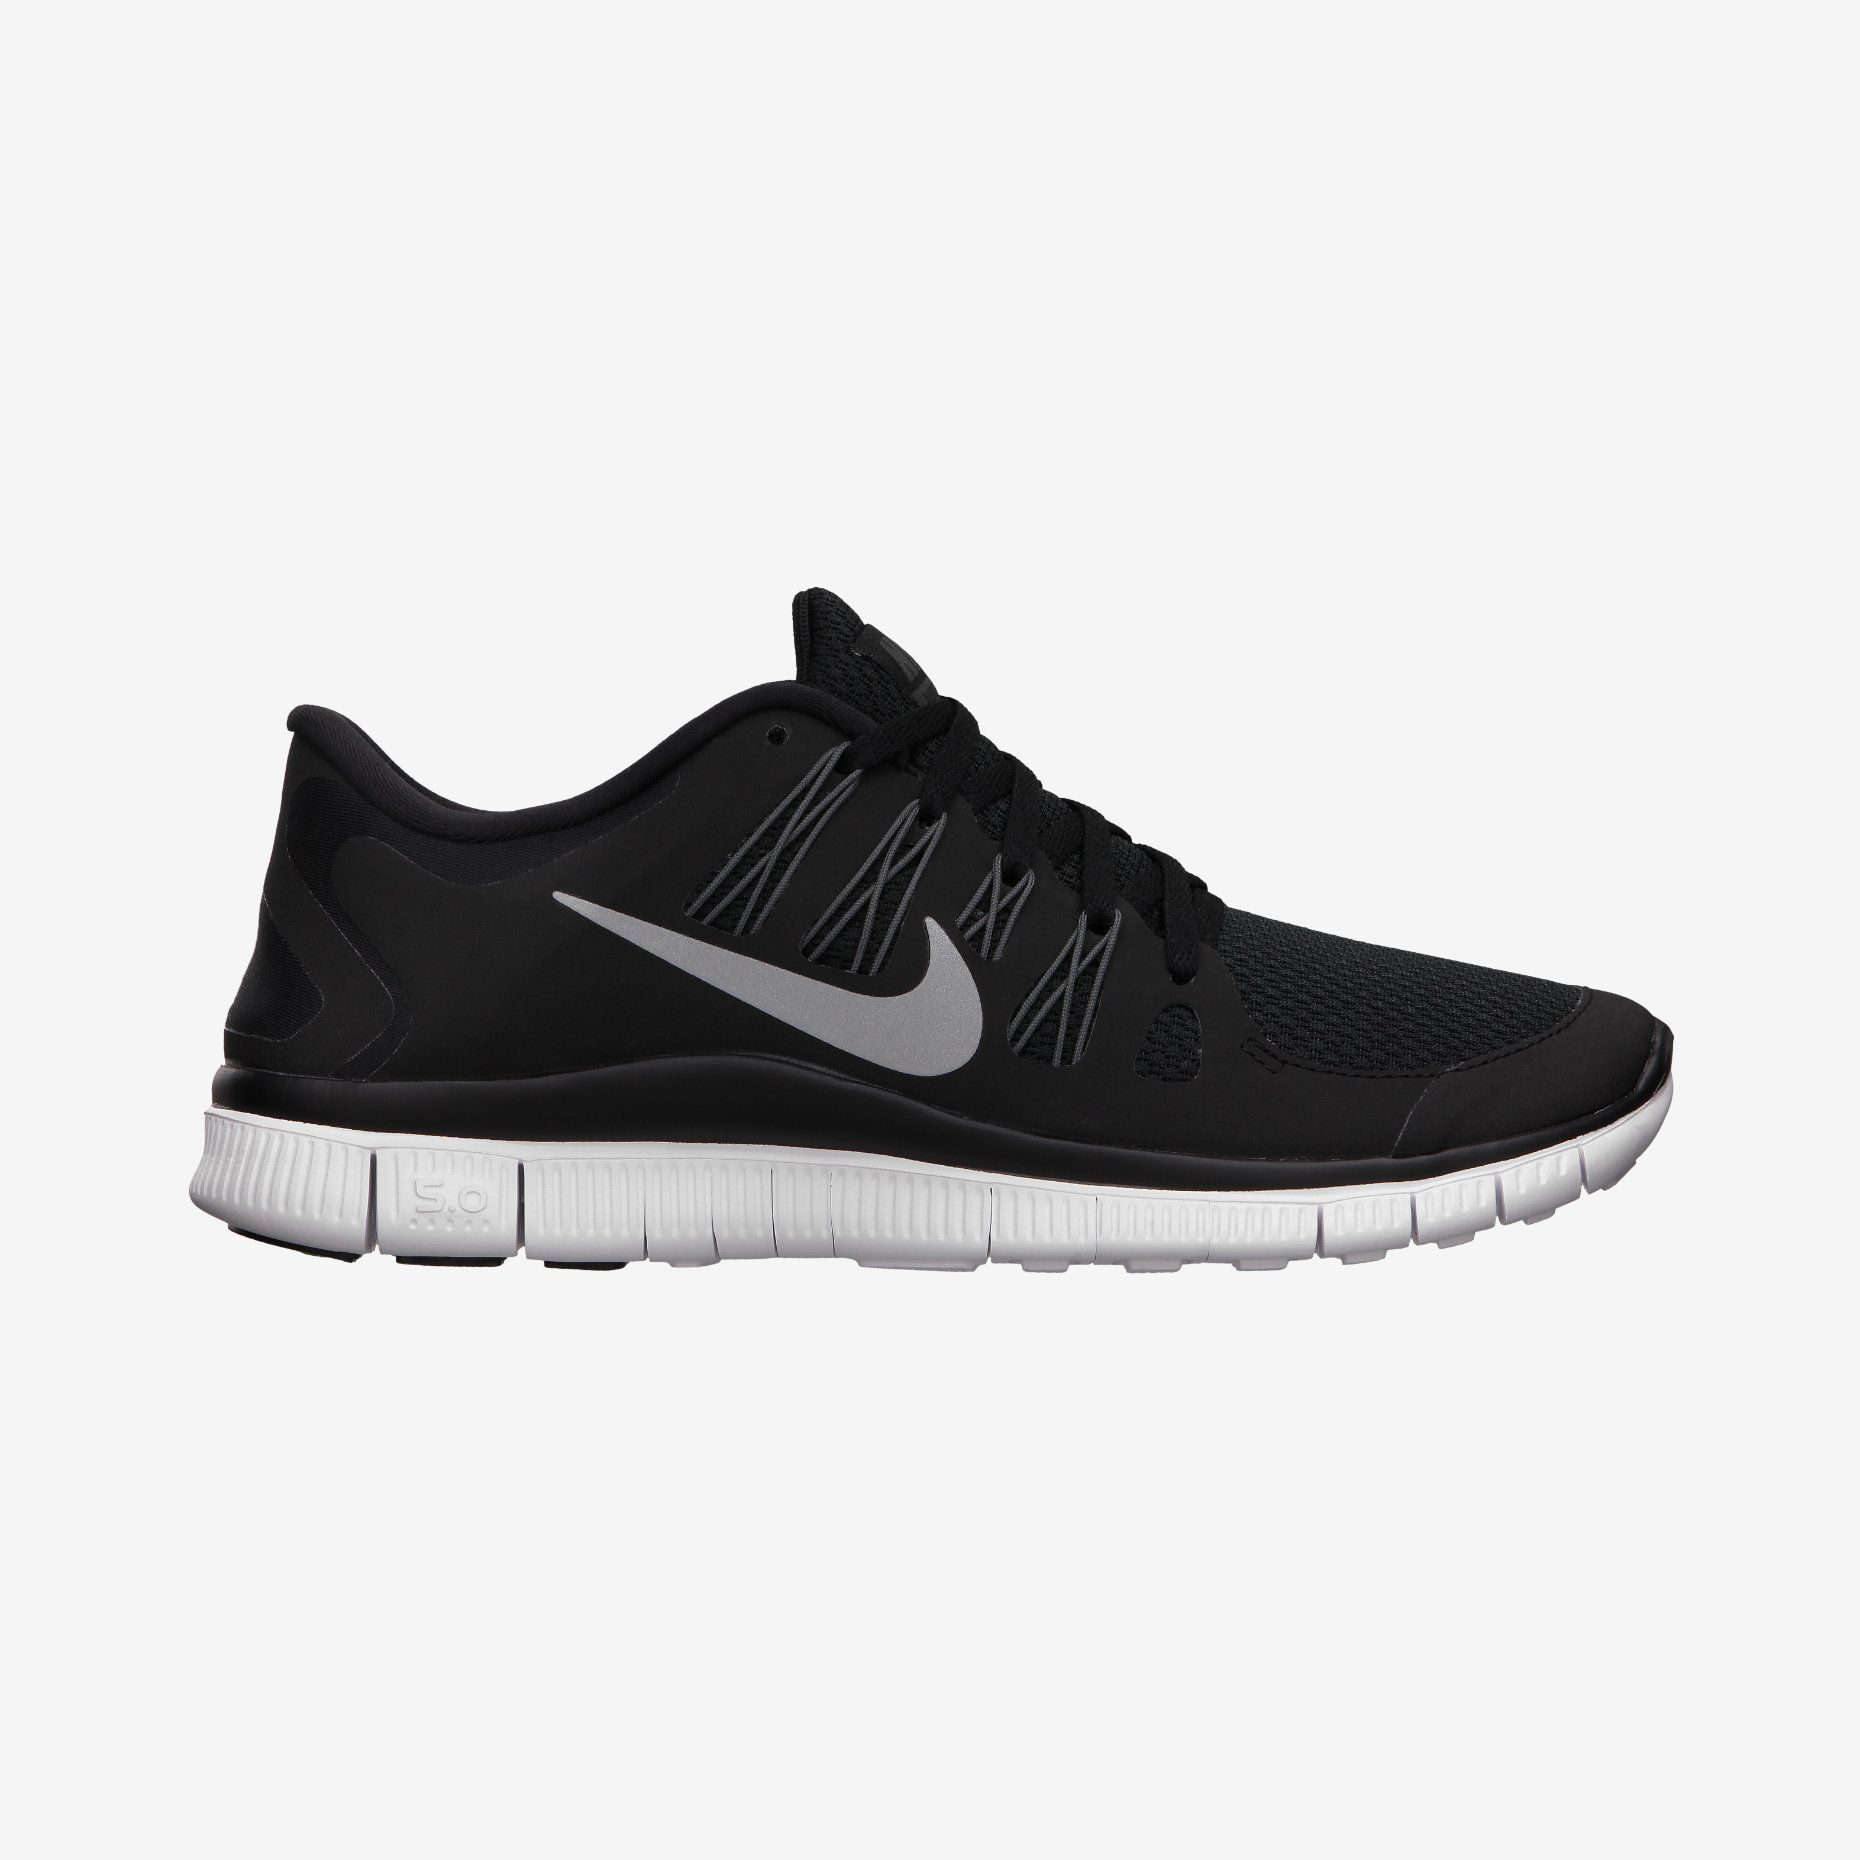 super popular c6567 7b8a8 Nike Free 5.0 Womens Running Shoe